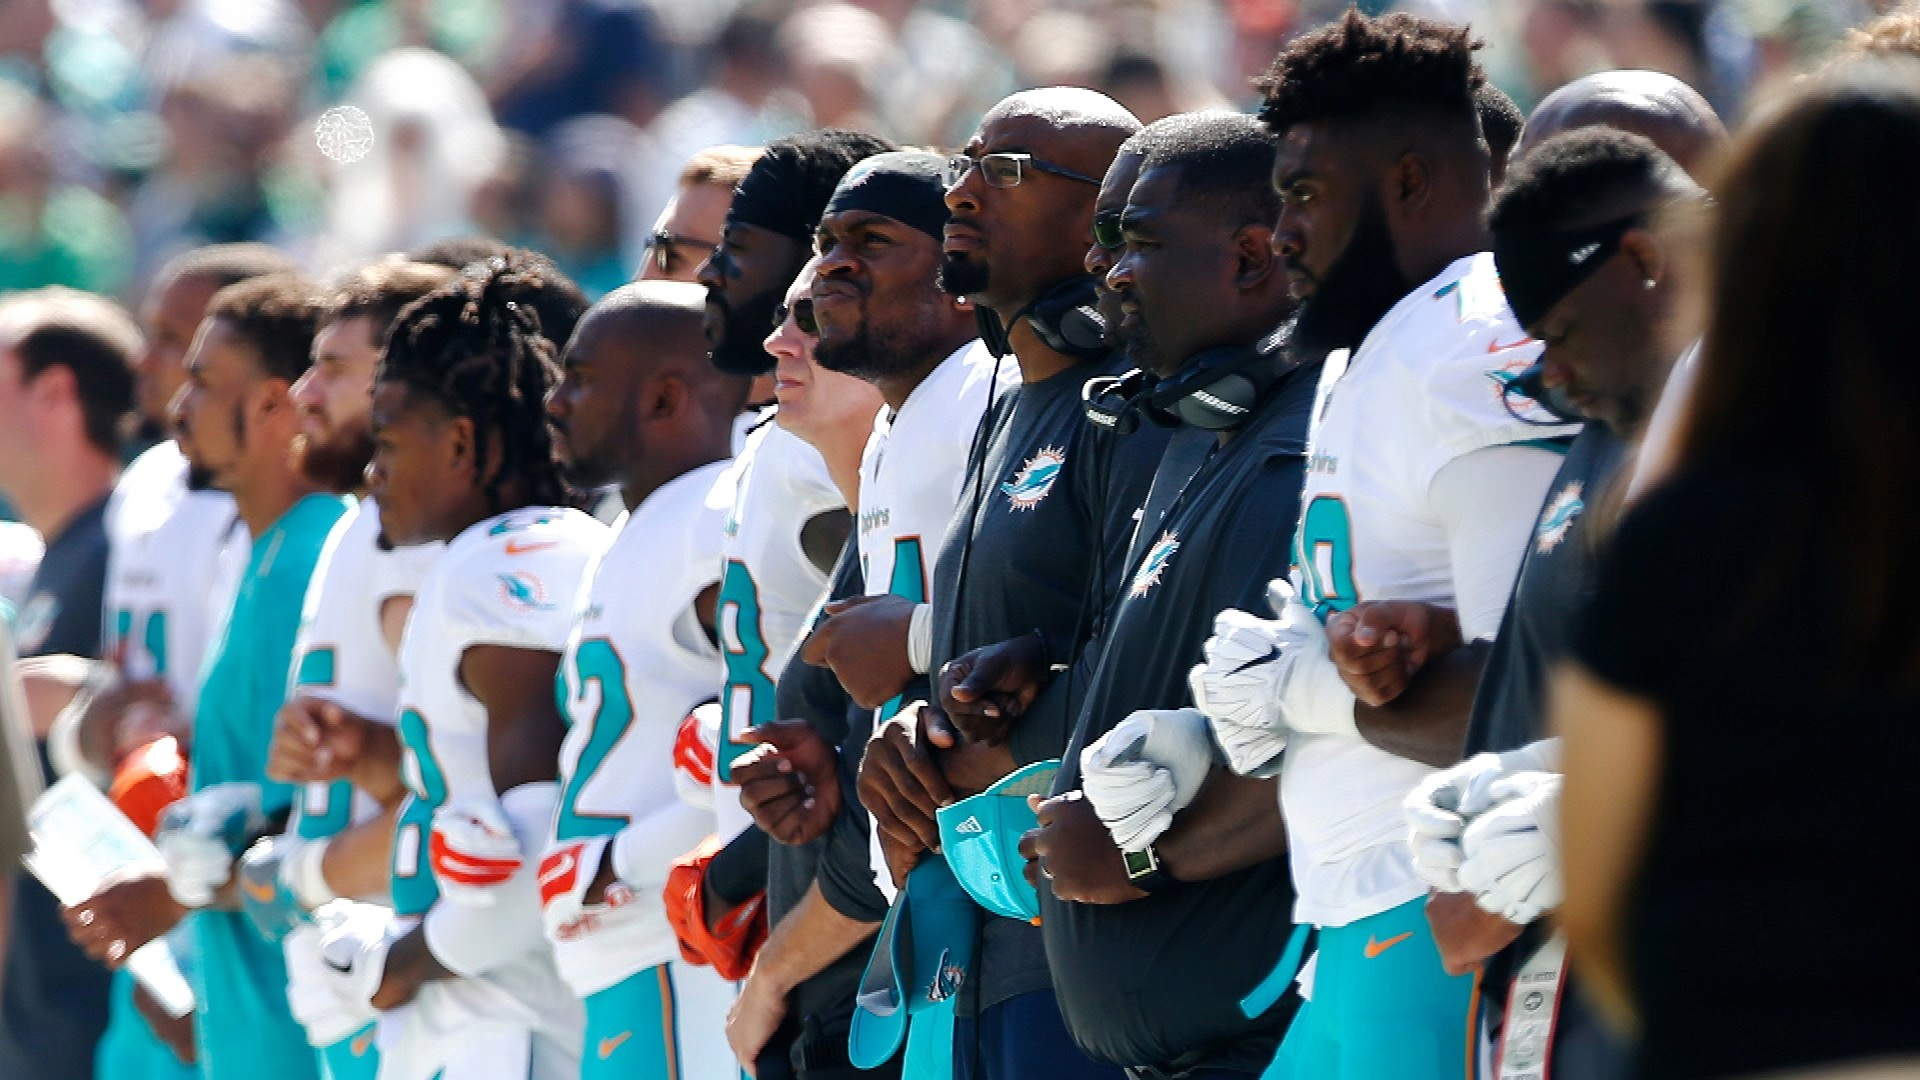 Miami Dolphins List Potential Punishments For Violating New Anthem Rule Nbc Sports